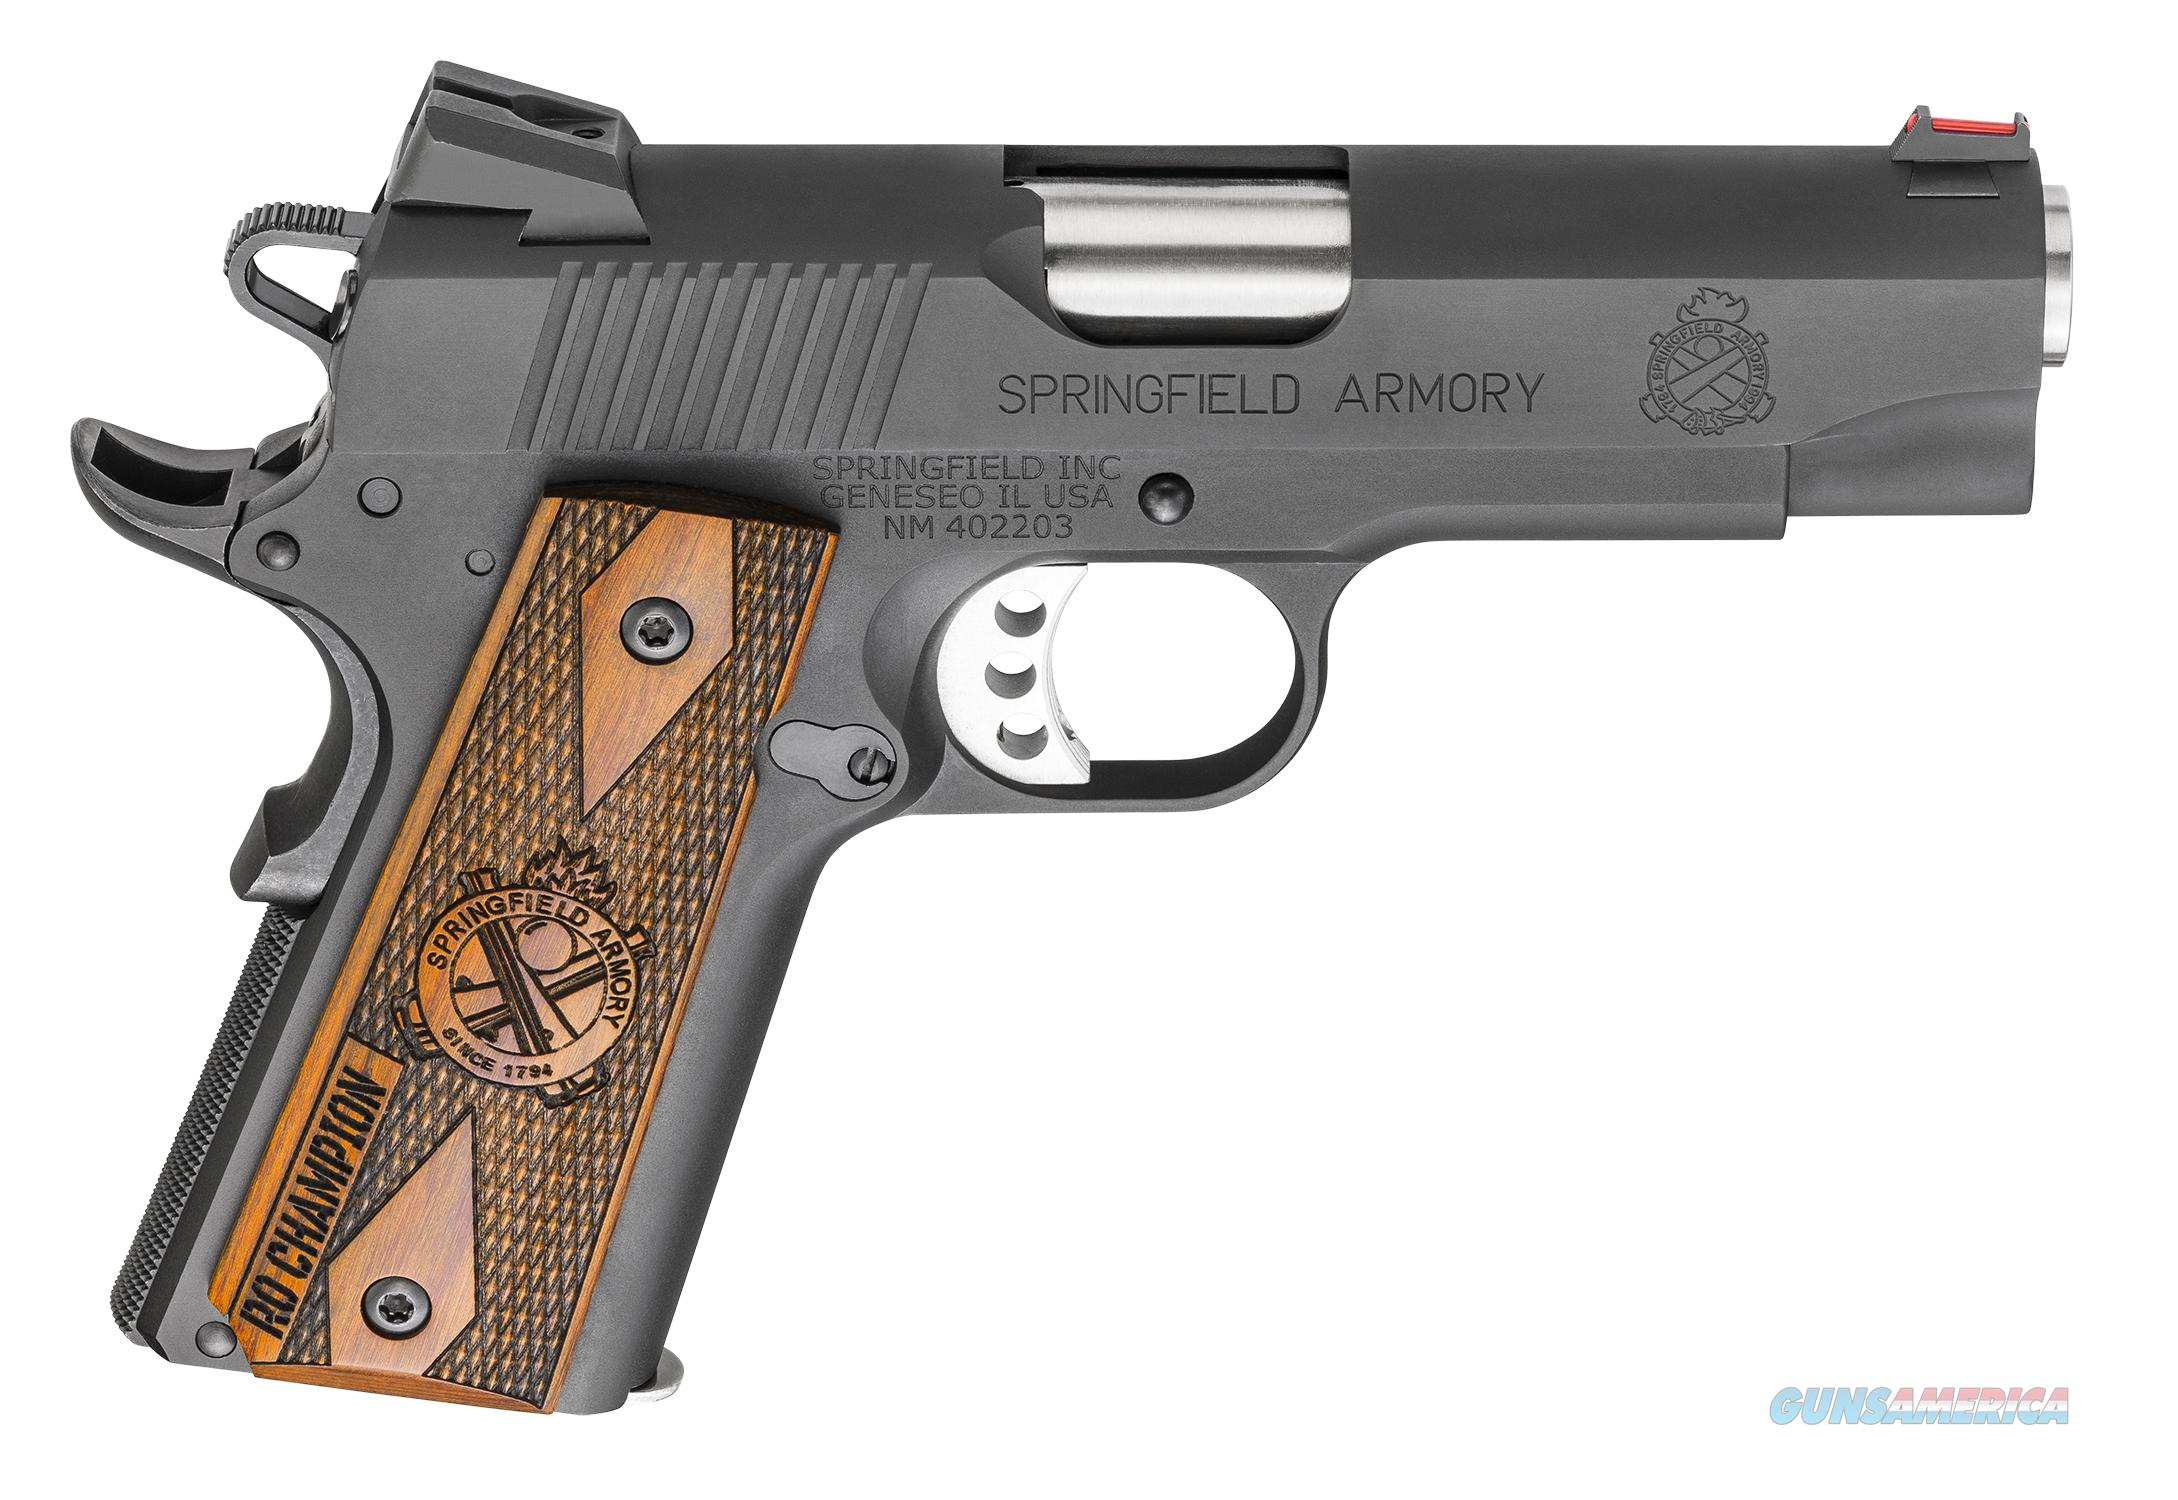 Springfield Armory LW Champion Range Officer .45 acp Commander 1911  *NEW* PI9136L  Guns > Pistols > Springfield Armory Pistols > 1911 Type